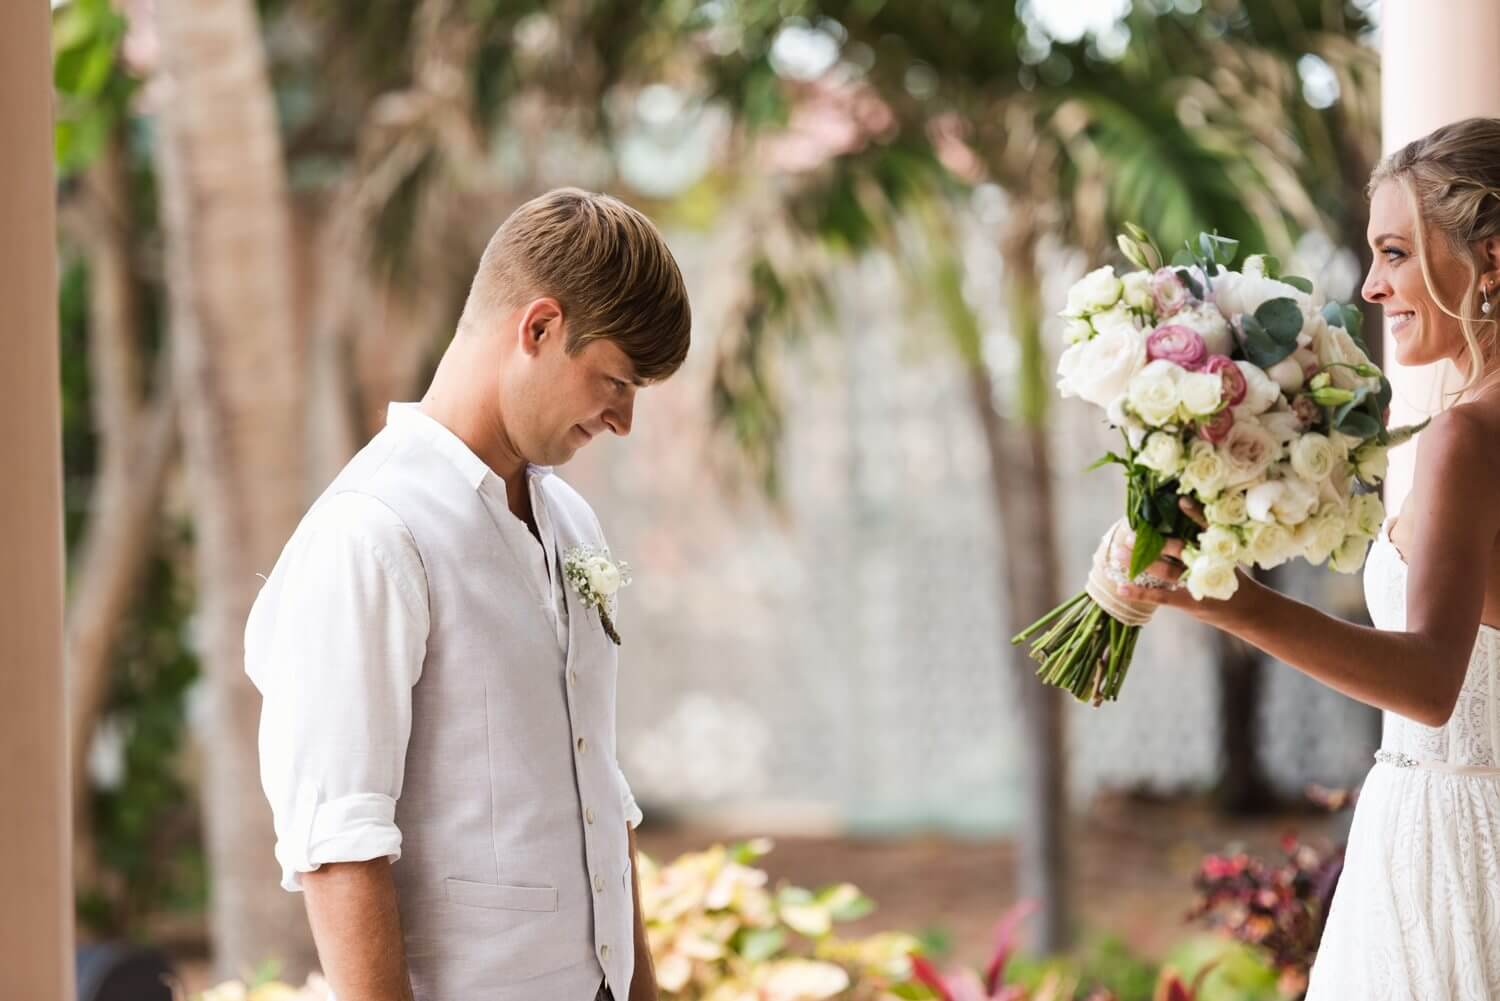 Freas Photography Southernmost House Wedding 51 - Boho Styled Key West Wedding at the Southernmost House in Key West, Florida